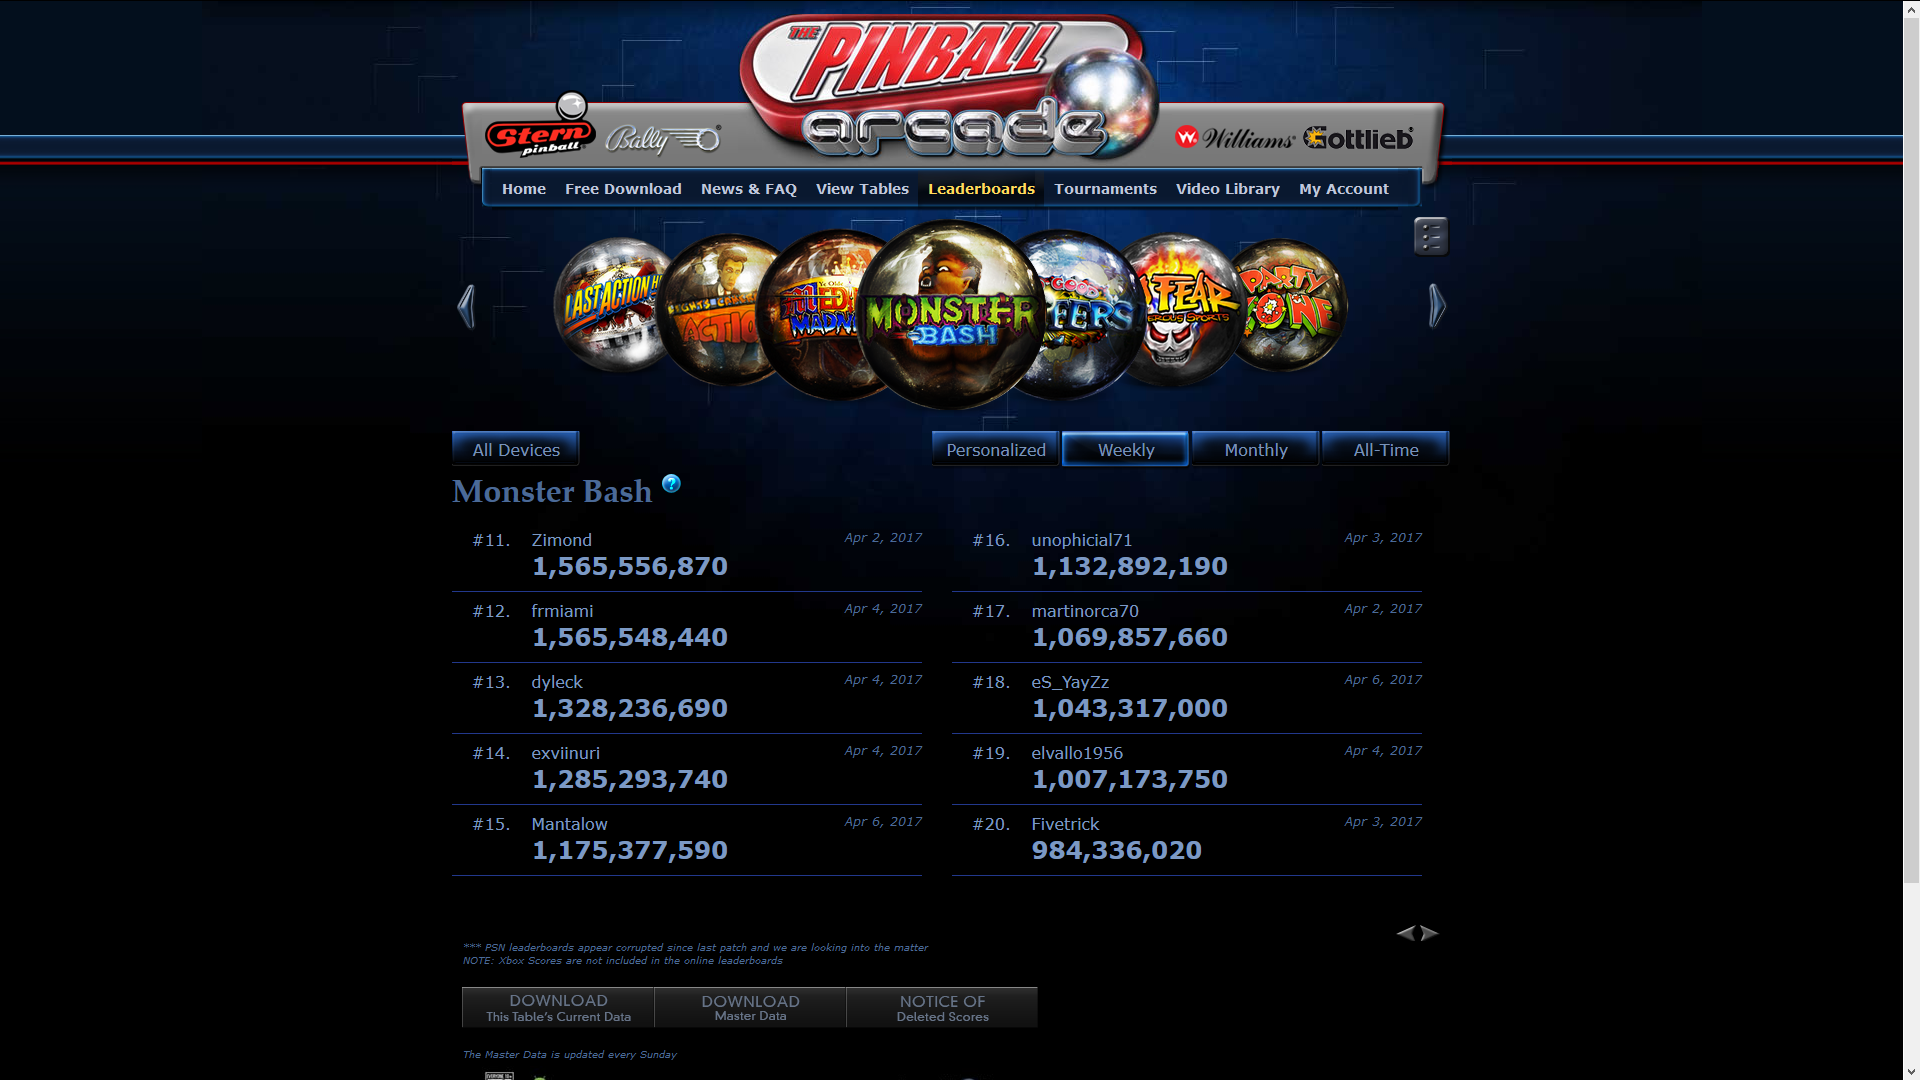 Mantalow: Pinball Arcade: Monster Bash (PC) 1,175,377,590 points on 2017-04-06 04:34:16